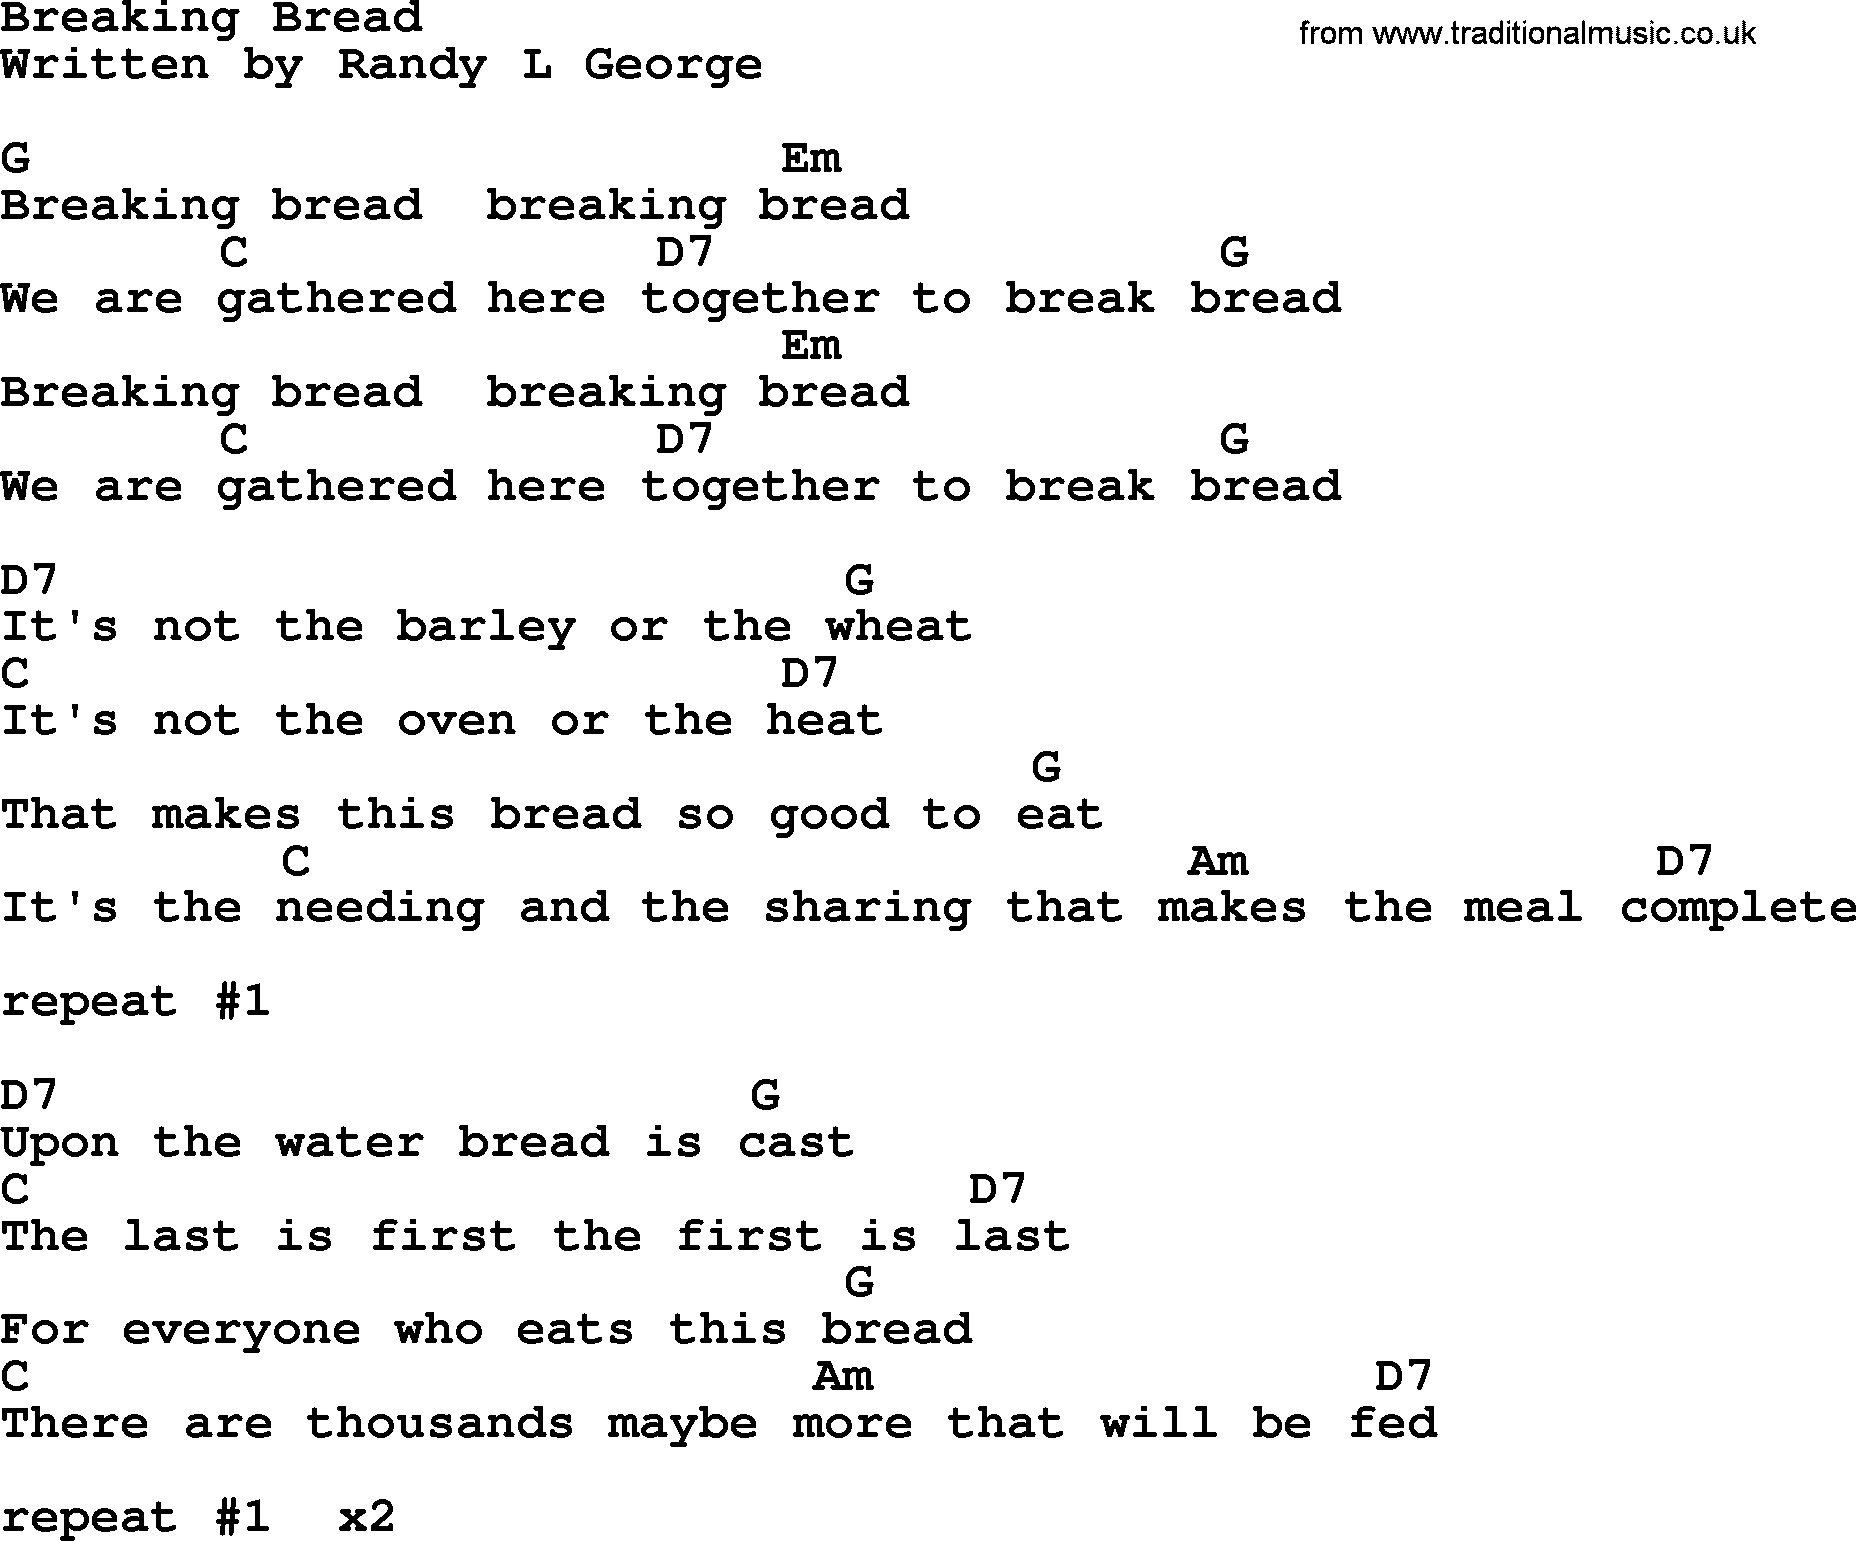 johnny cash song breaking bread lyrics and chords